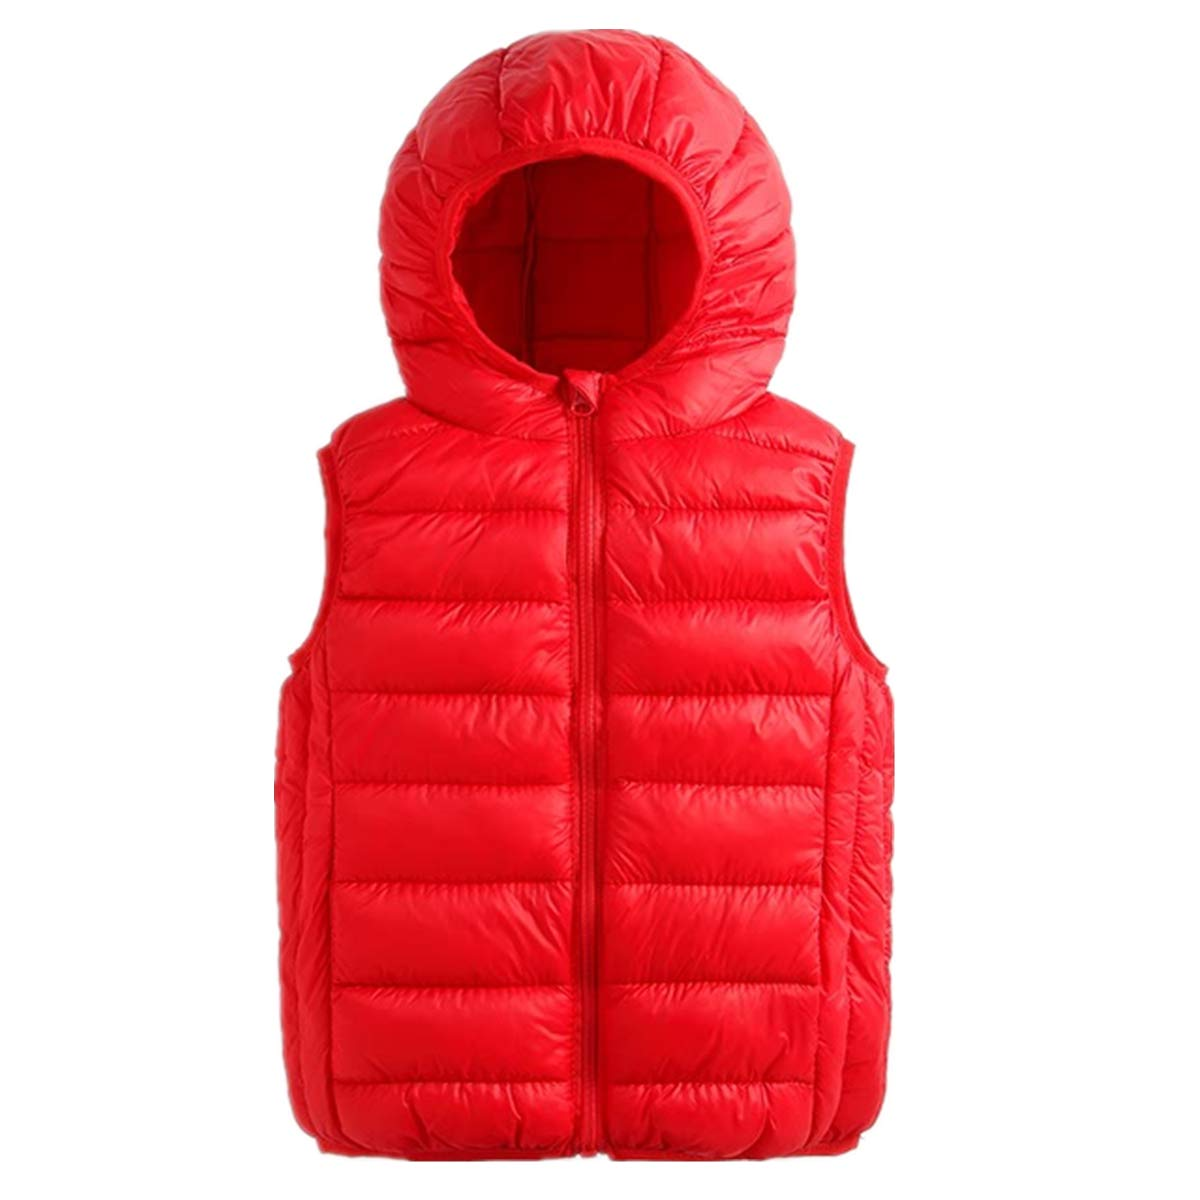 Beiduoxiong Kids Girls Lightweight Packable Outdoor Hooded Puffer Cotton Vest Purple